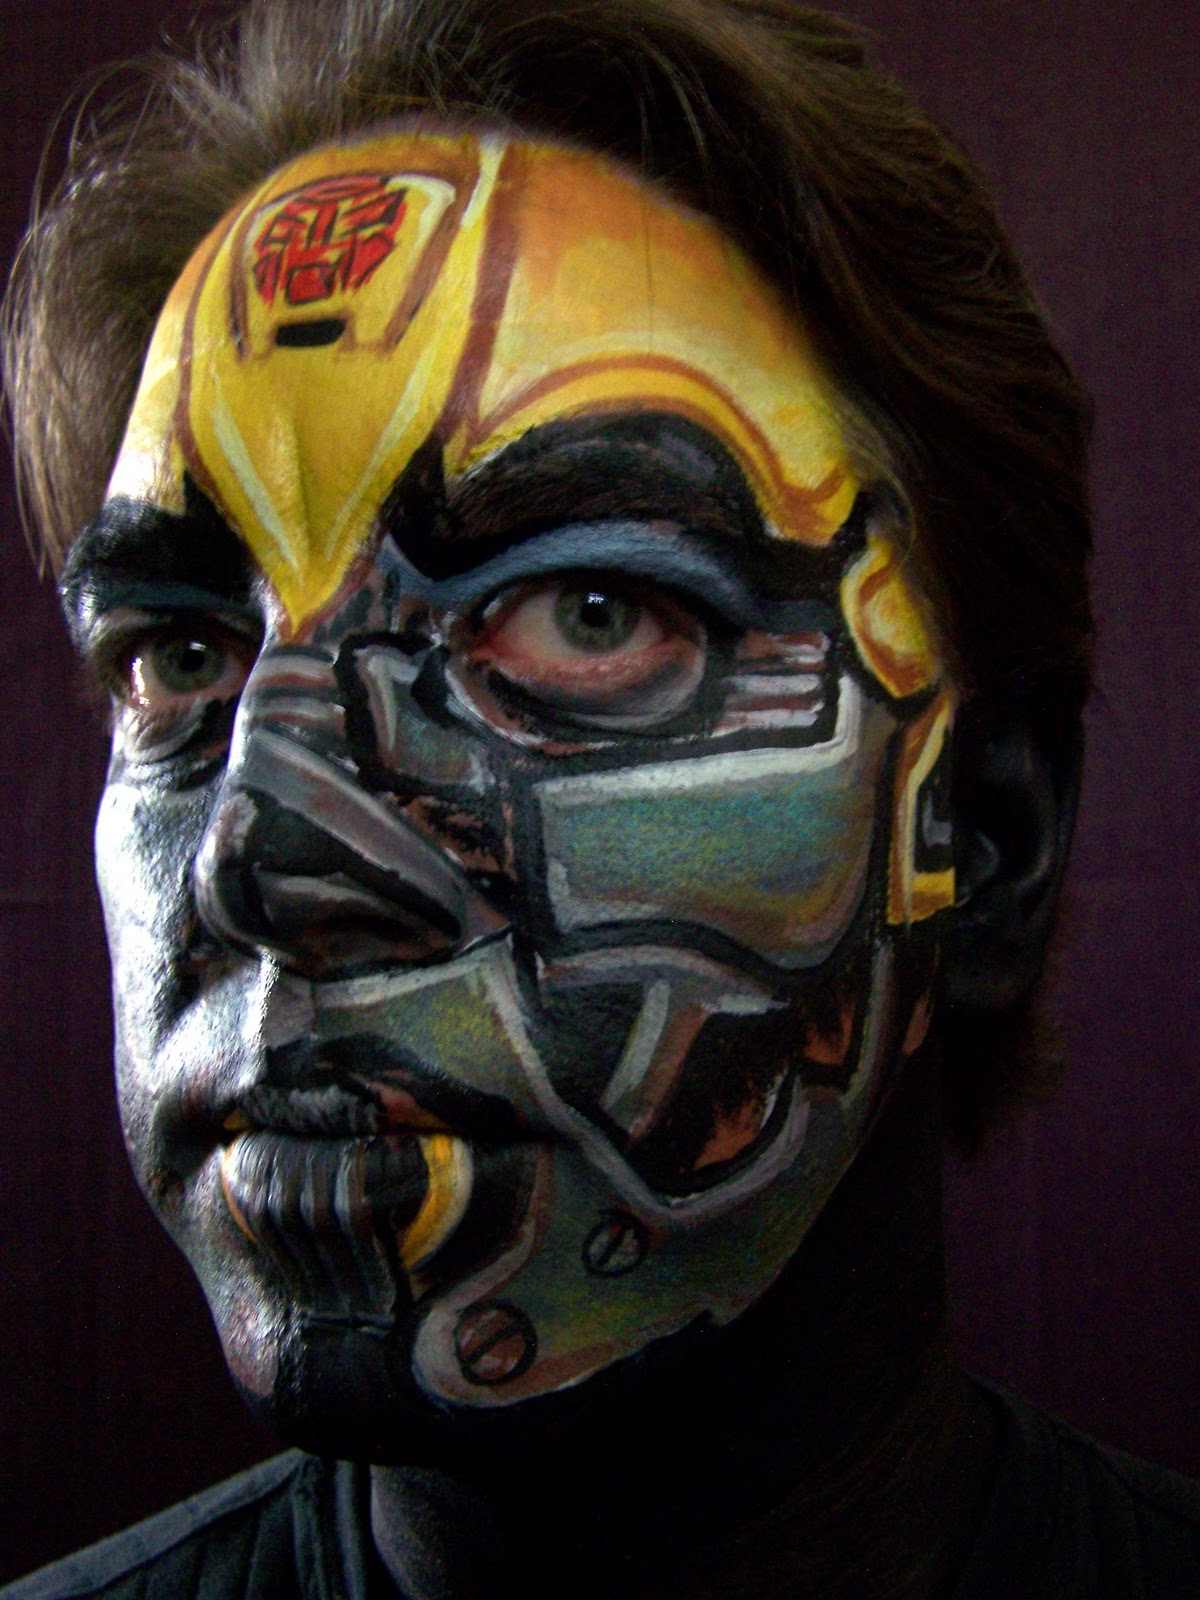 Transformers face paint | Transformers - Roll Out | Pinterest